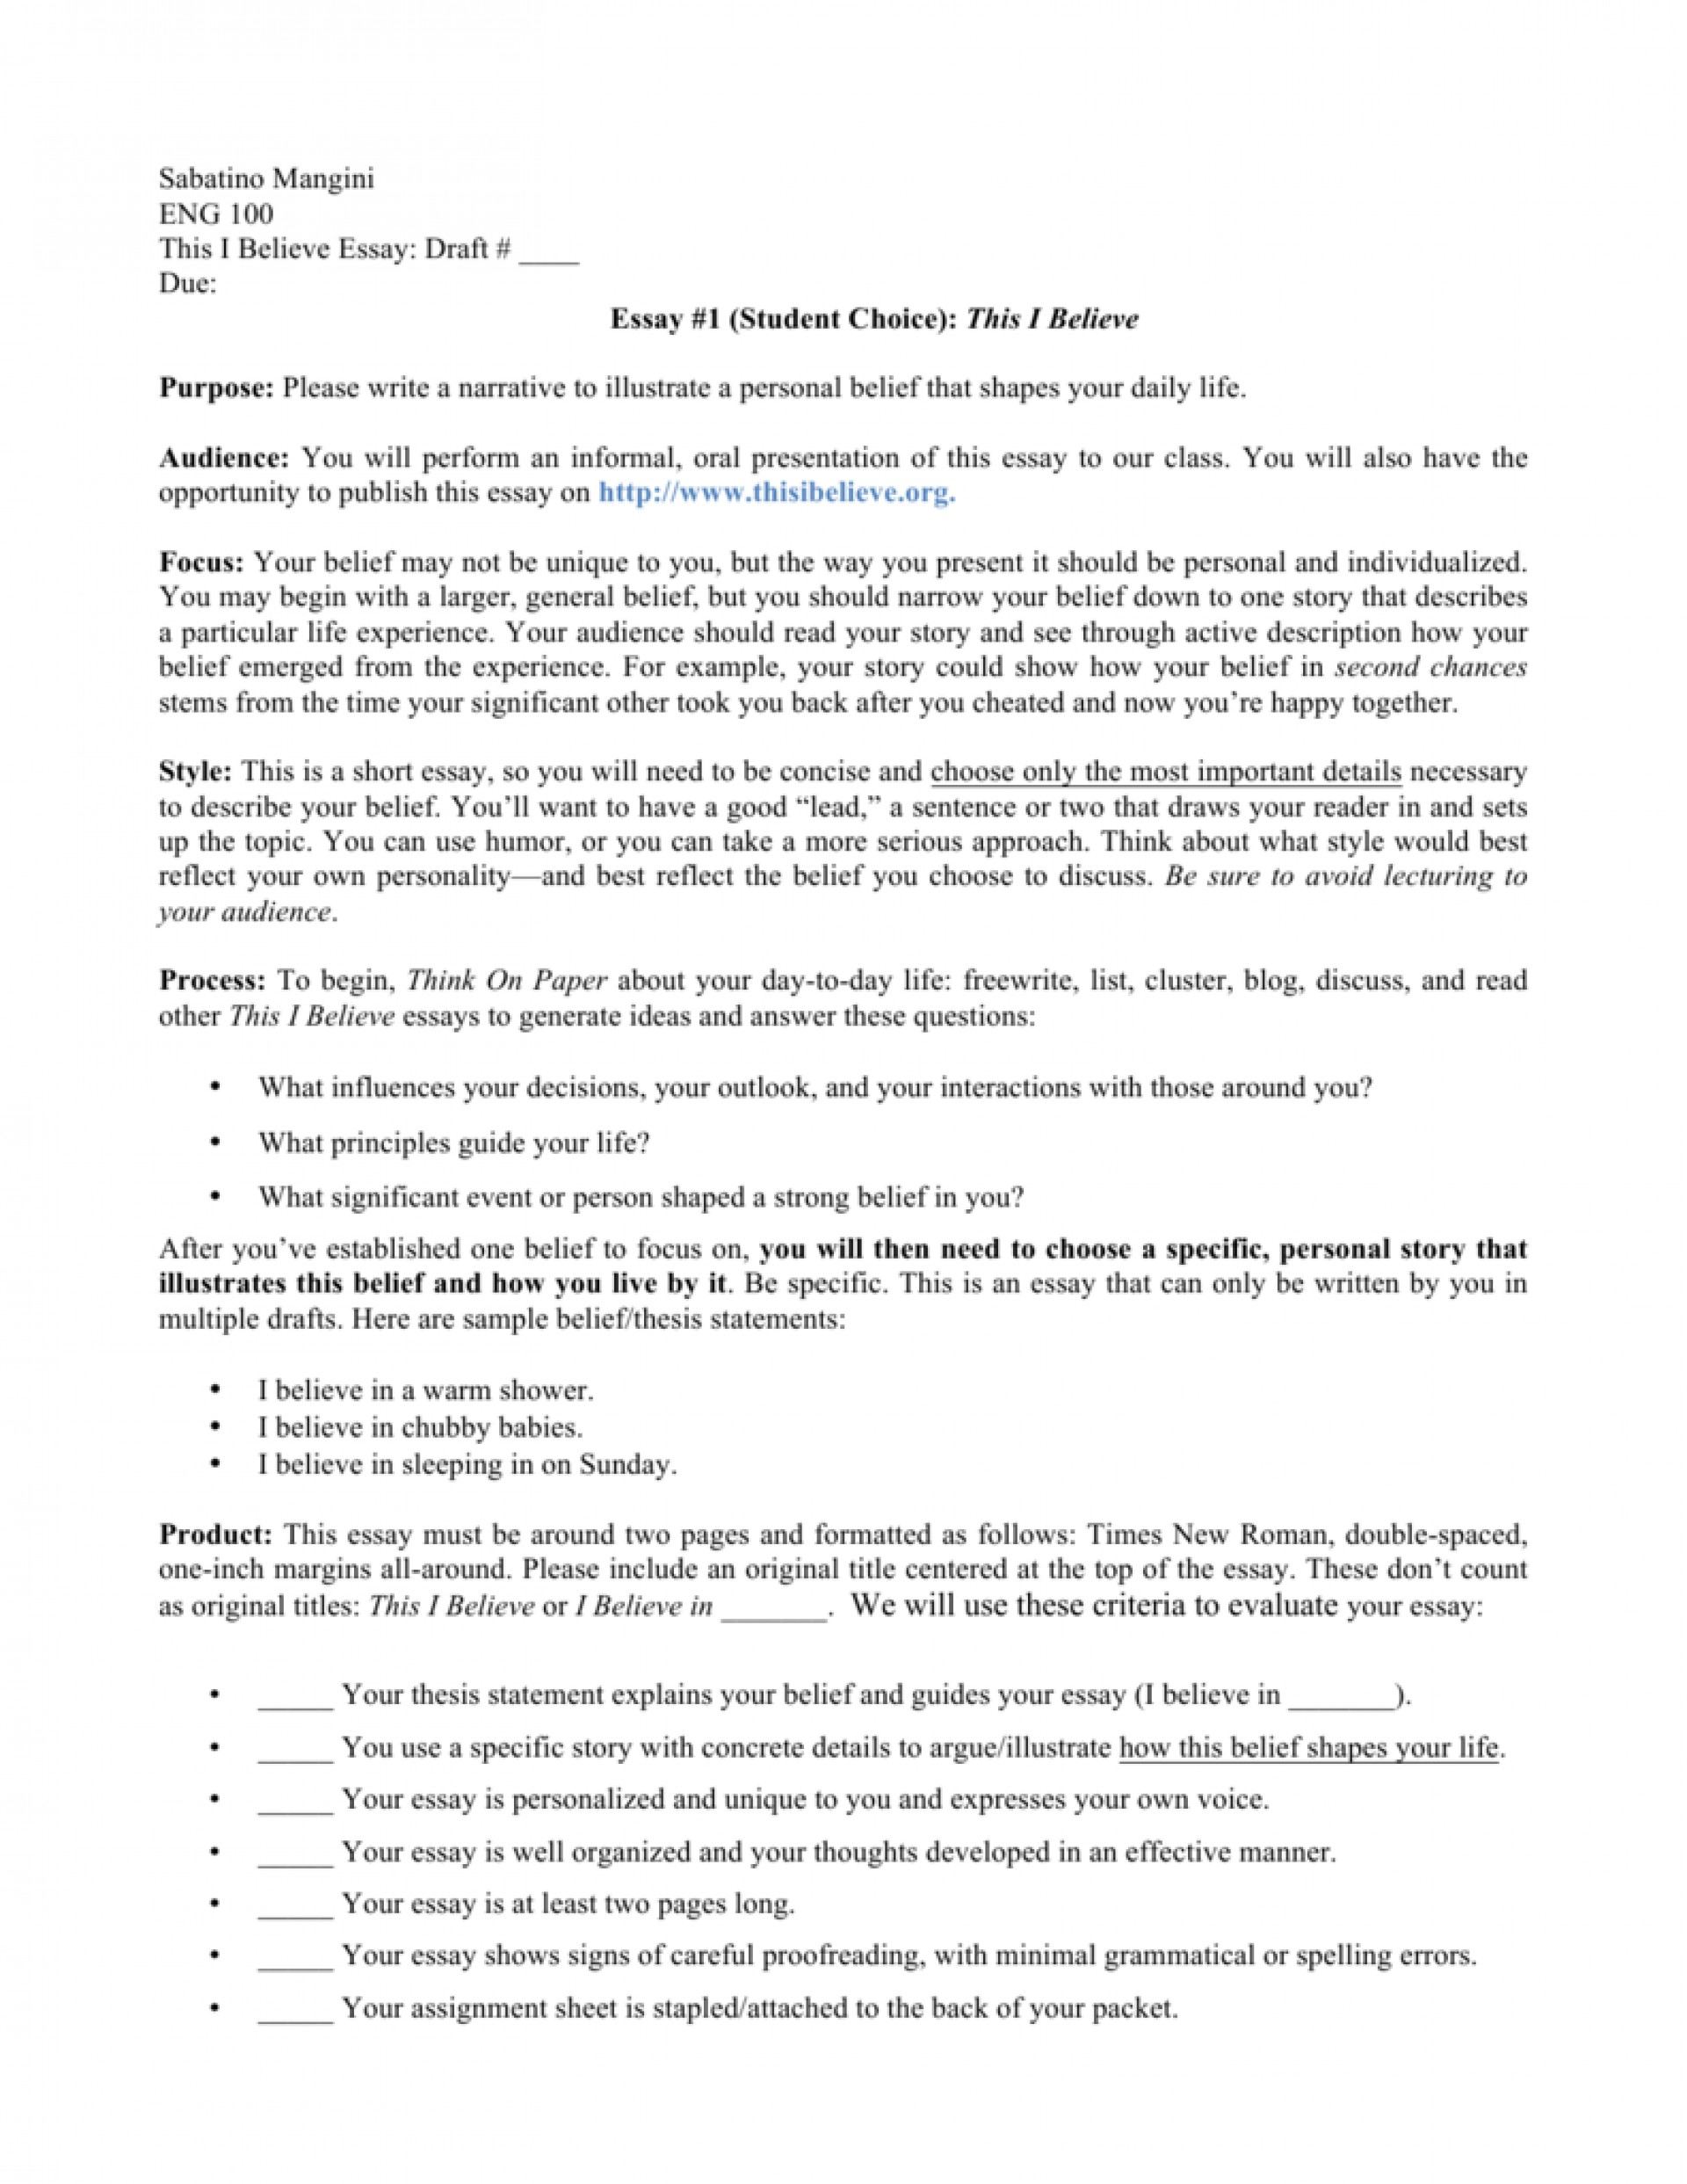 008 This I Believe Essays 008807227 1 Stupendous Essay Examples Personal College 1920